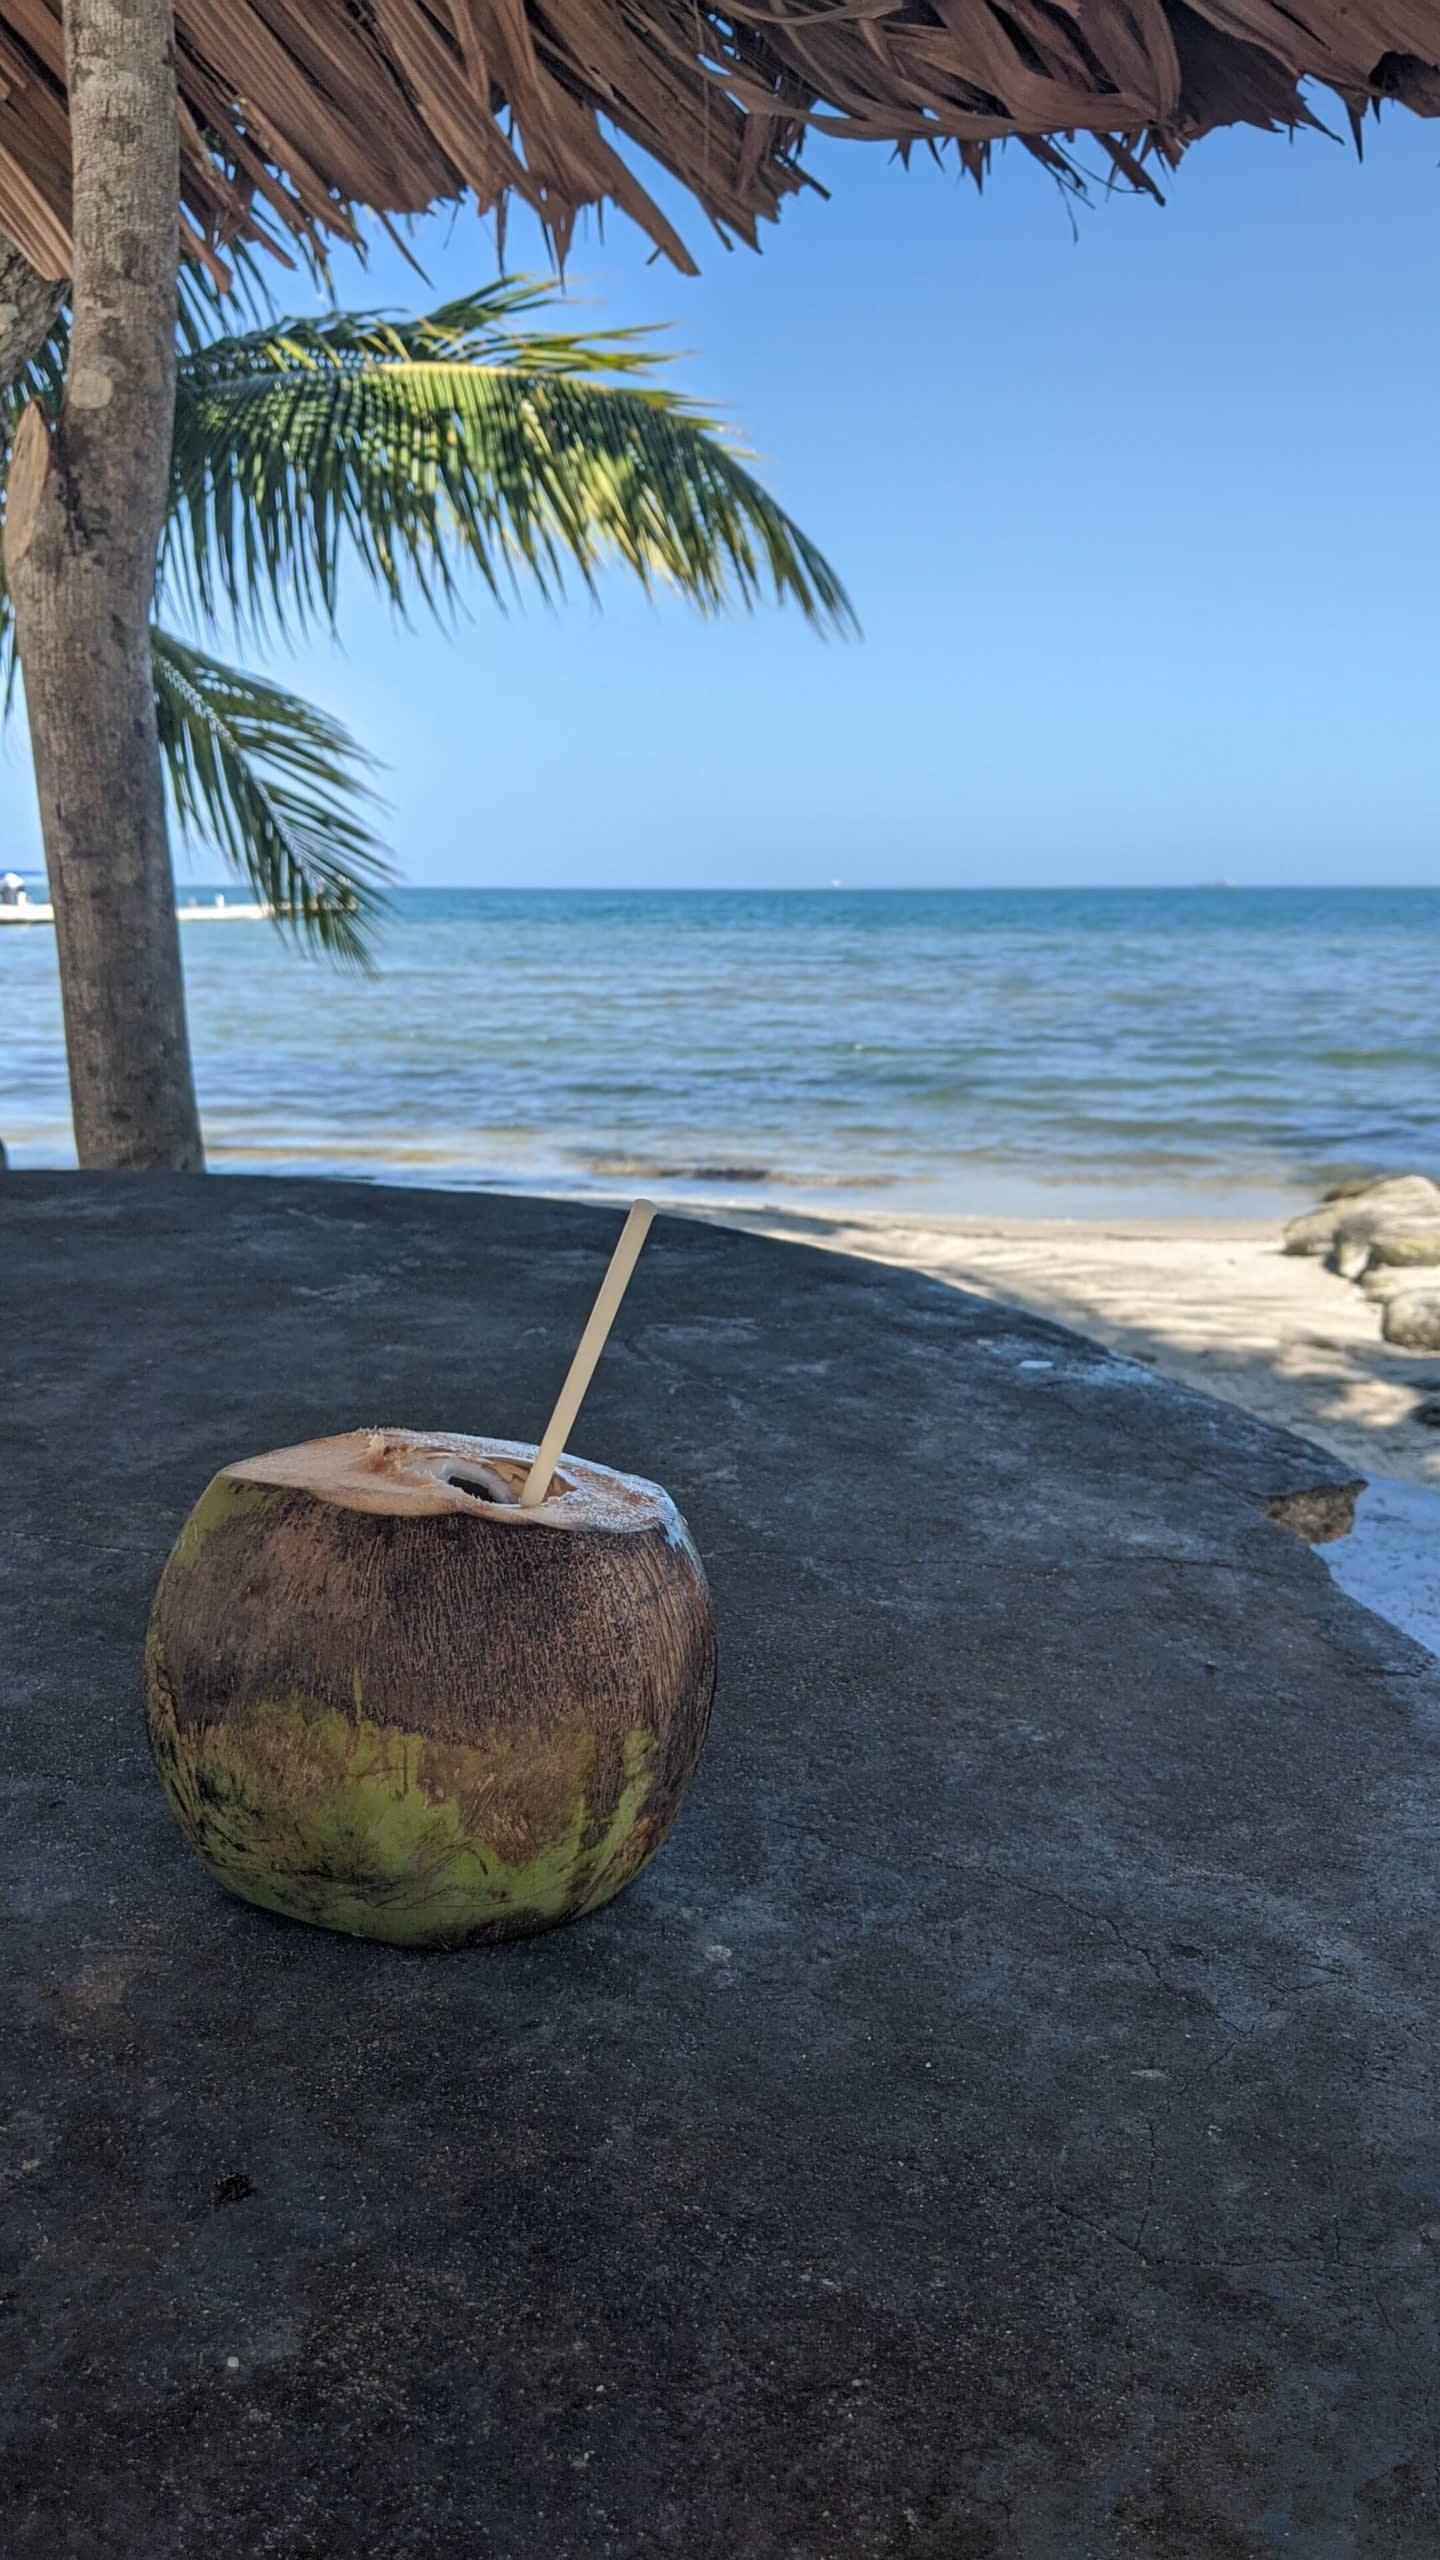 A coconut water in front of a beach scene